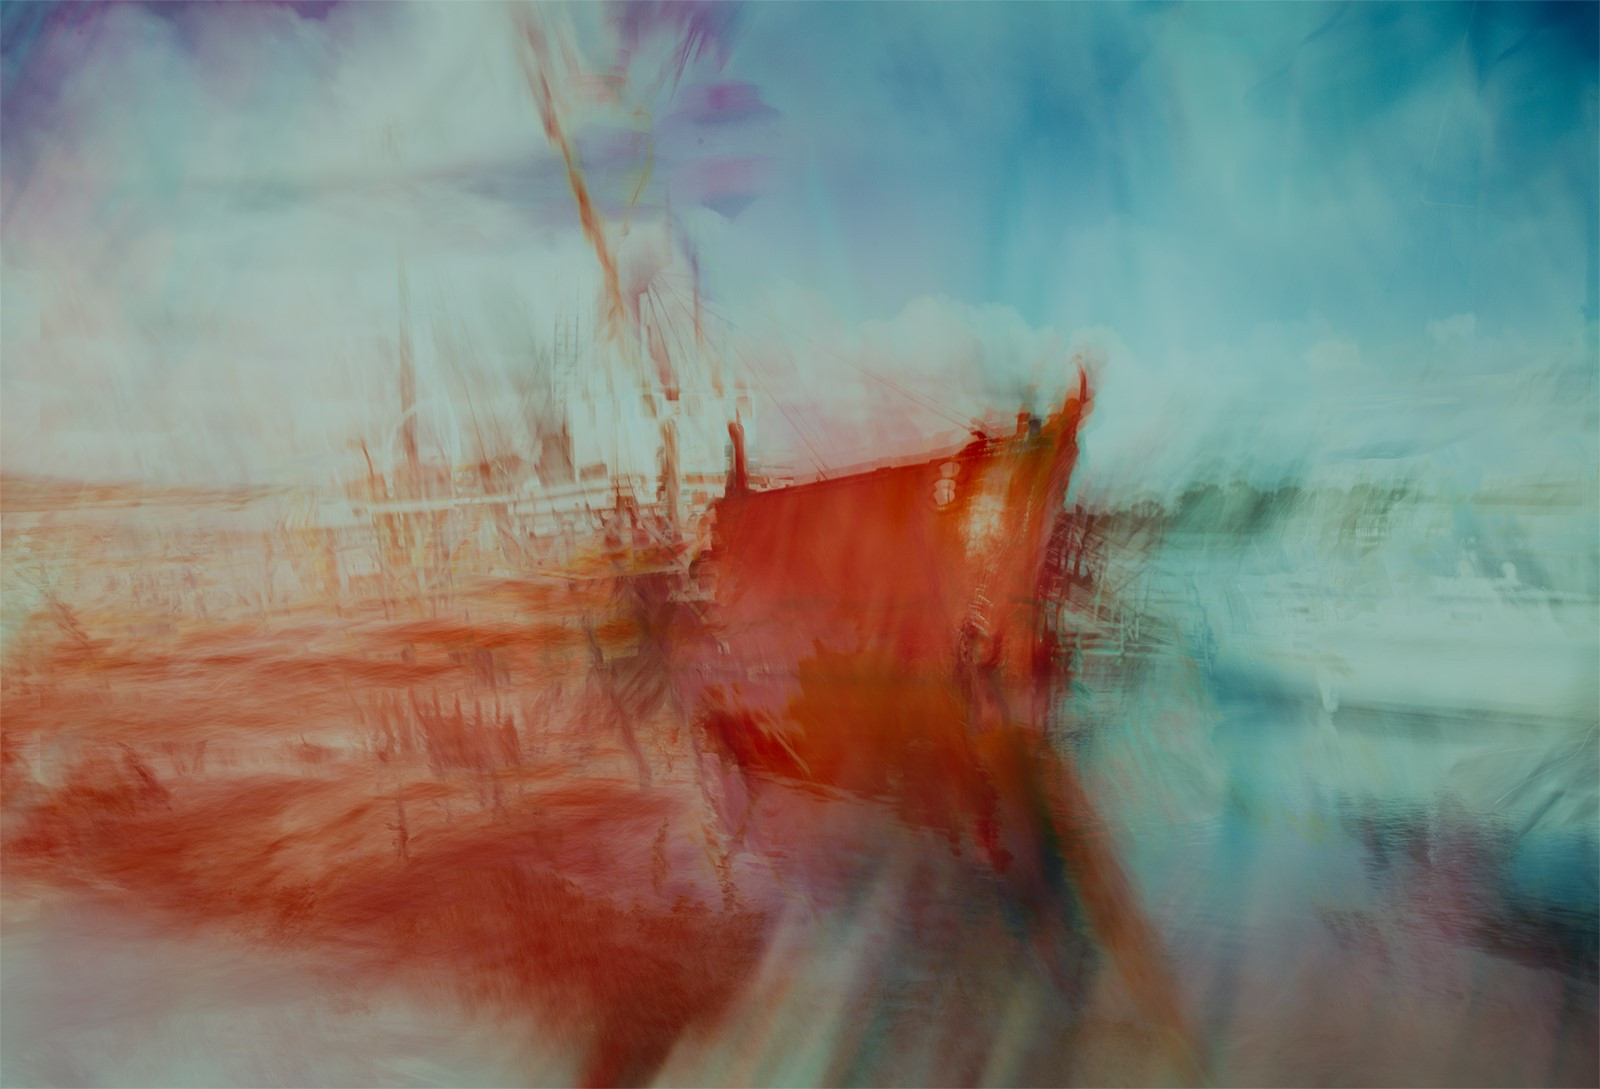 'The Light Ship' by Peter Adams (11 marks)